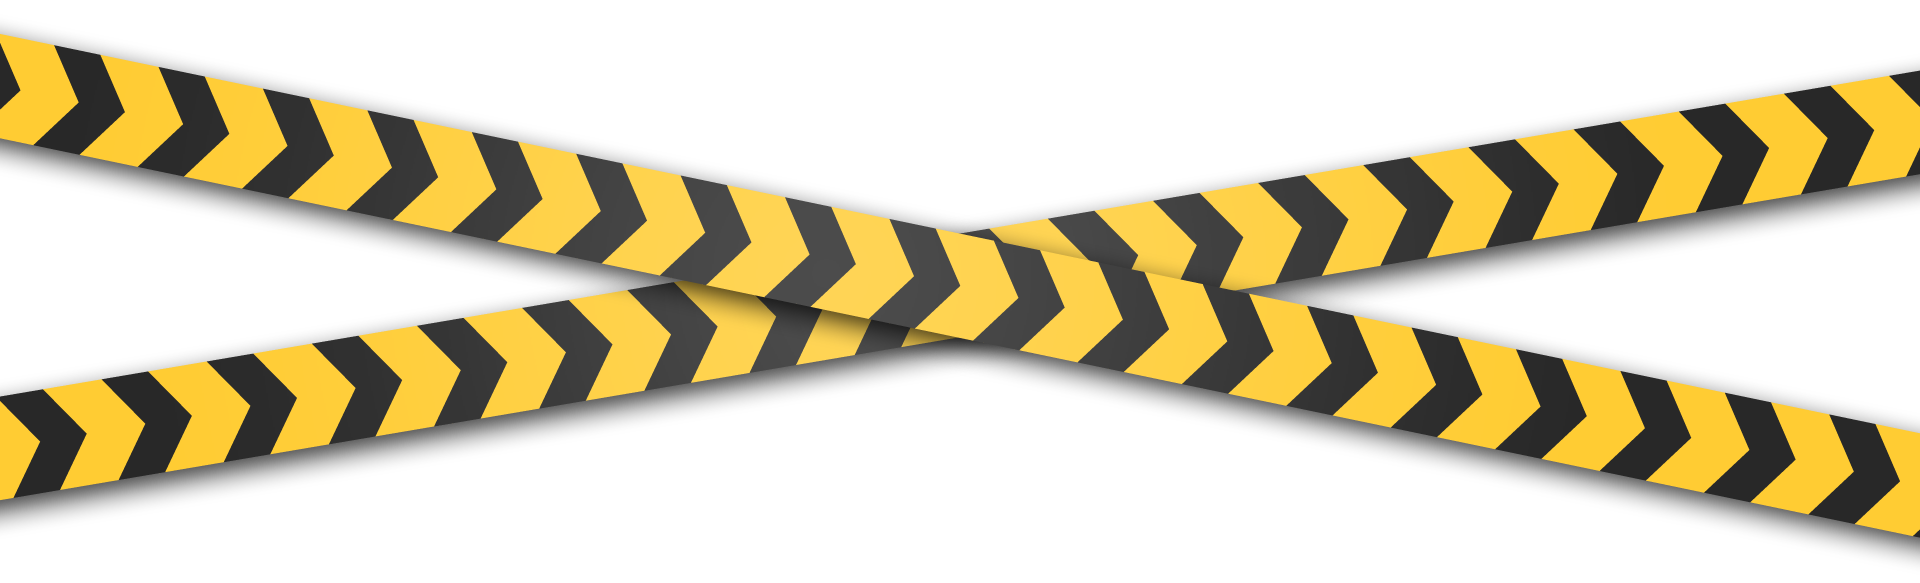 Construction High Quality PNG